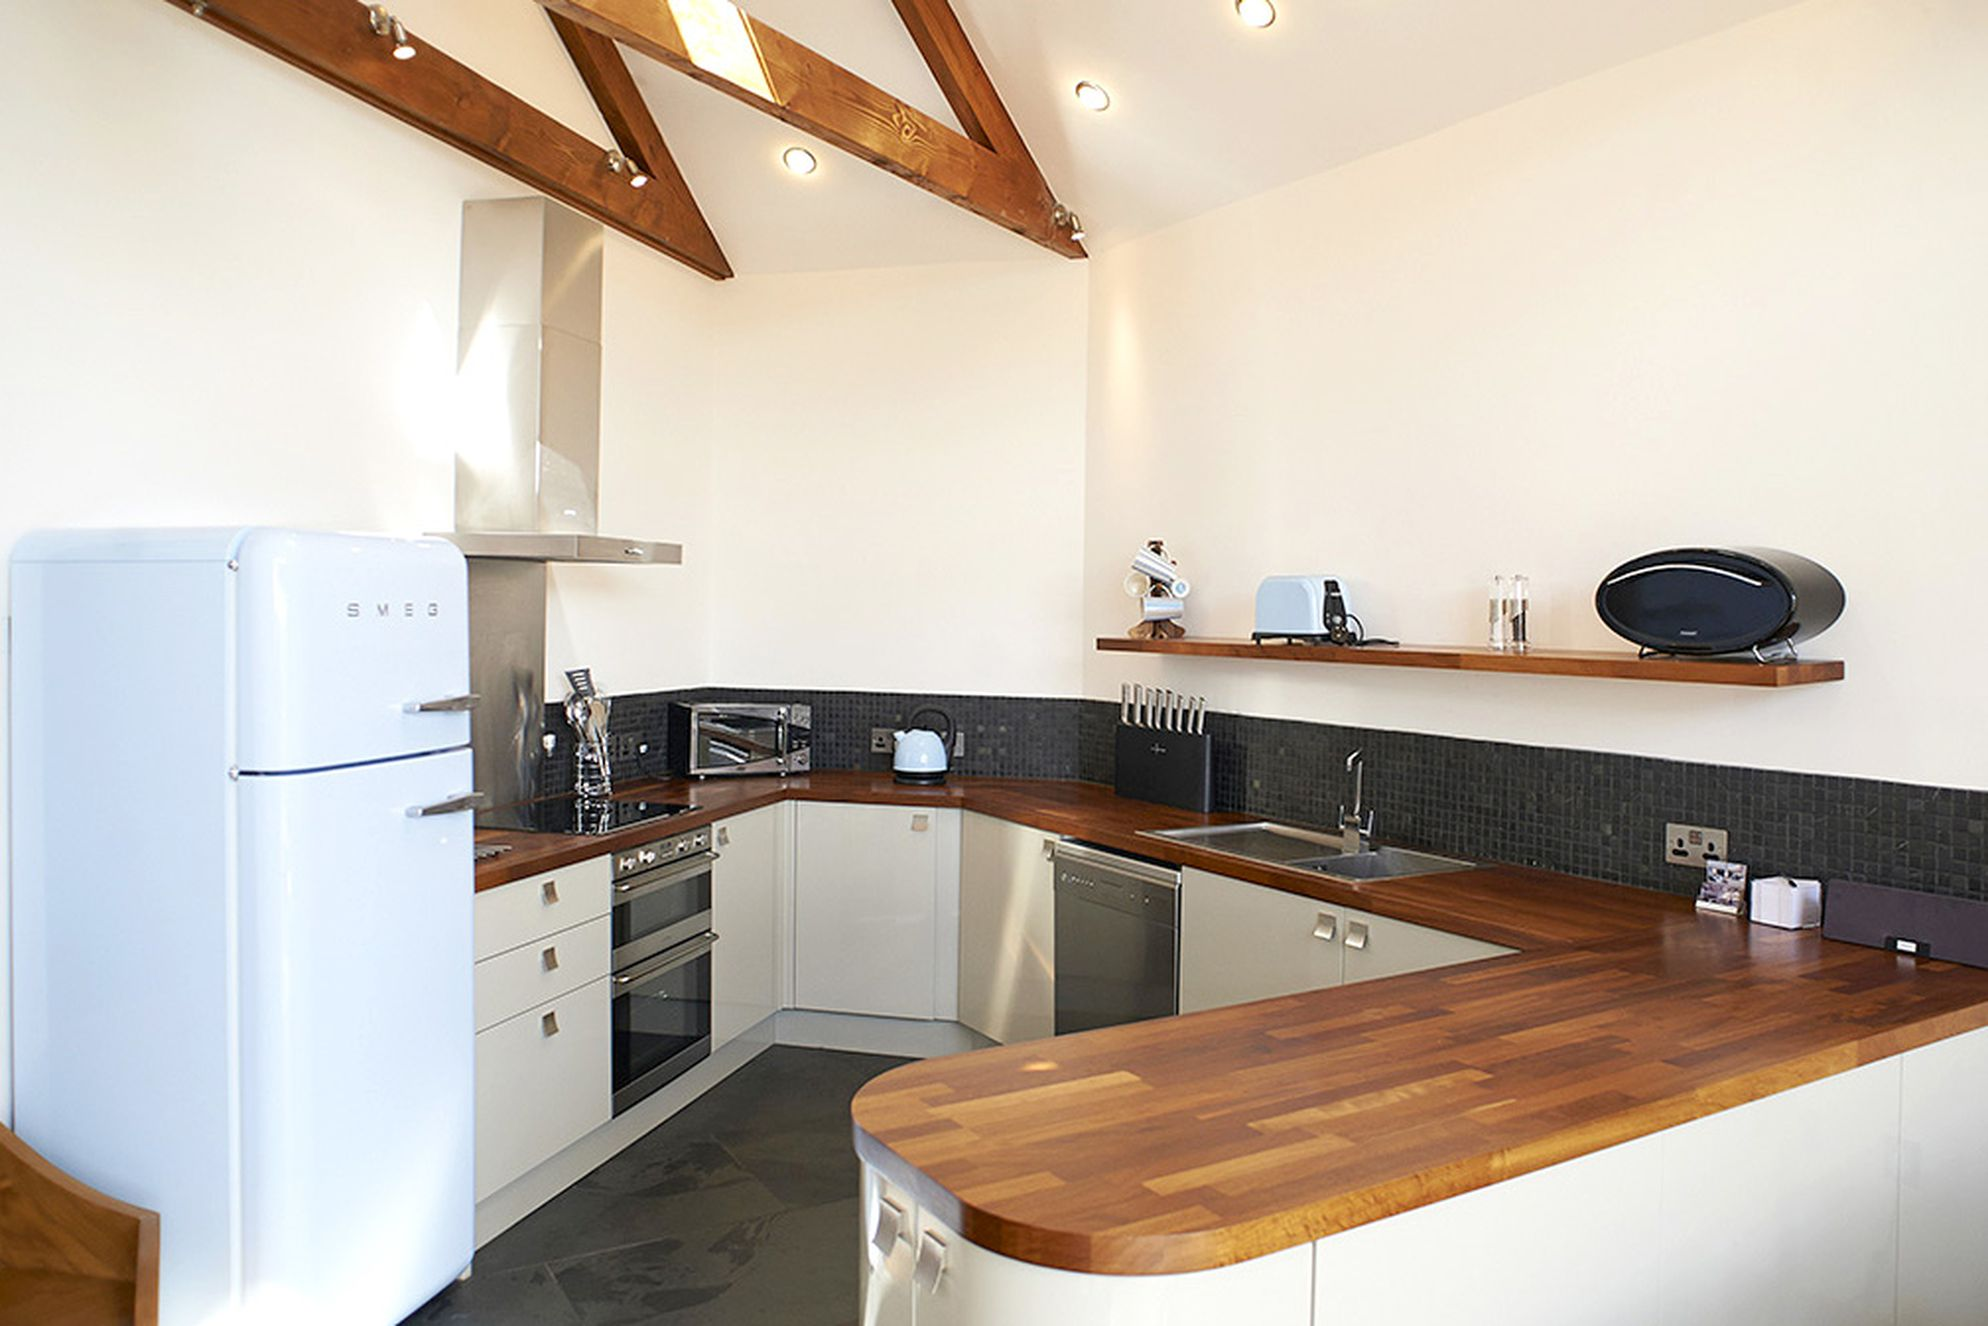 Merlin Farm Cornwall modern style kitchen with Smeg fridge